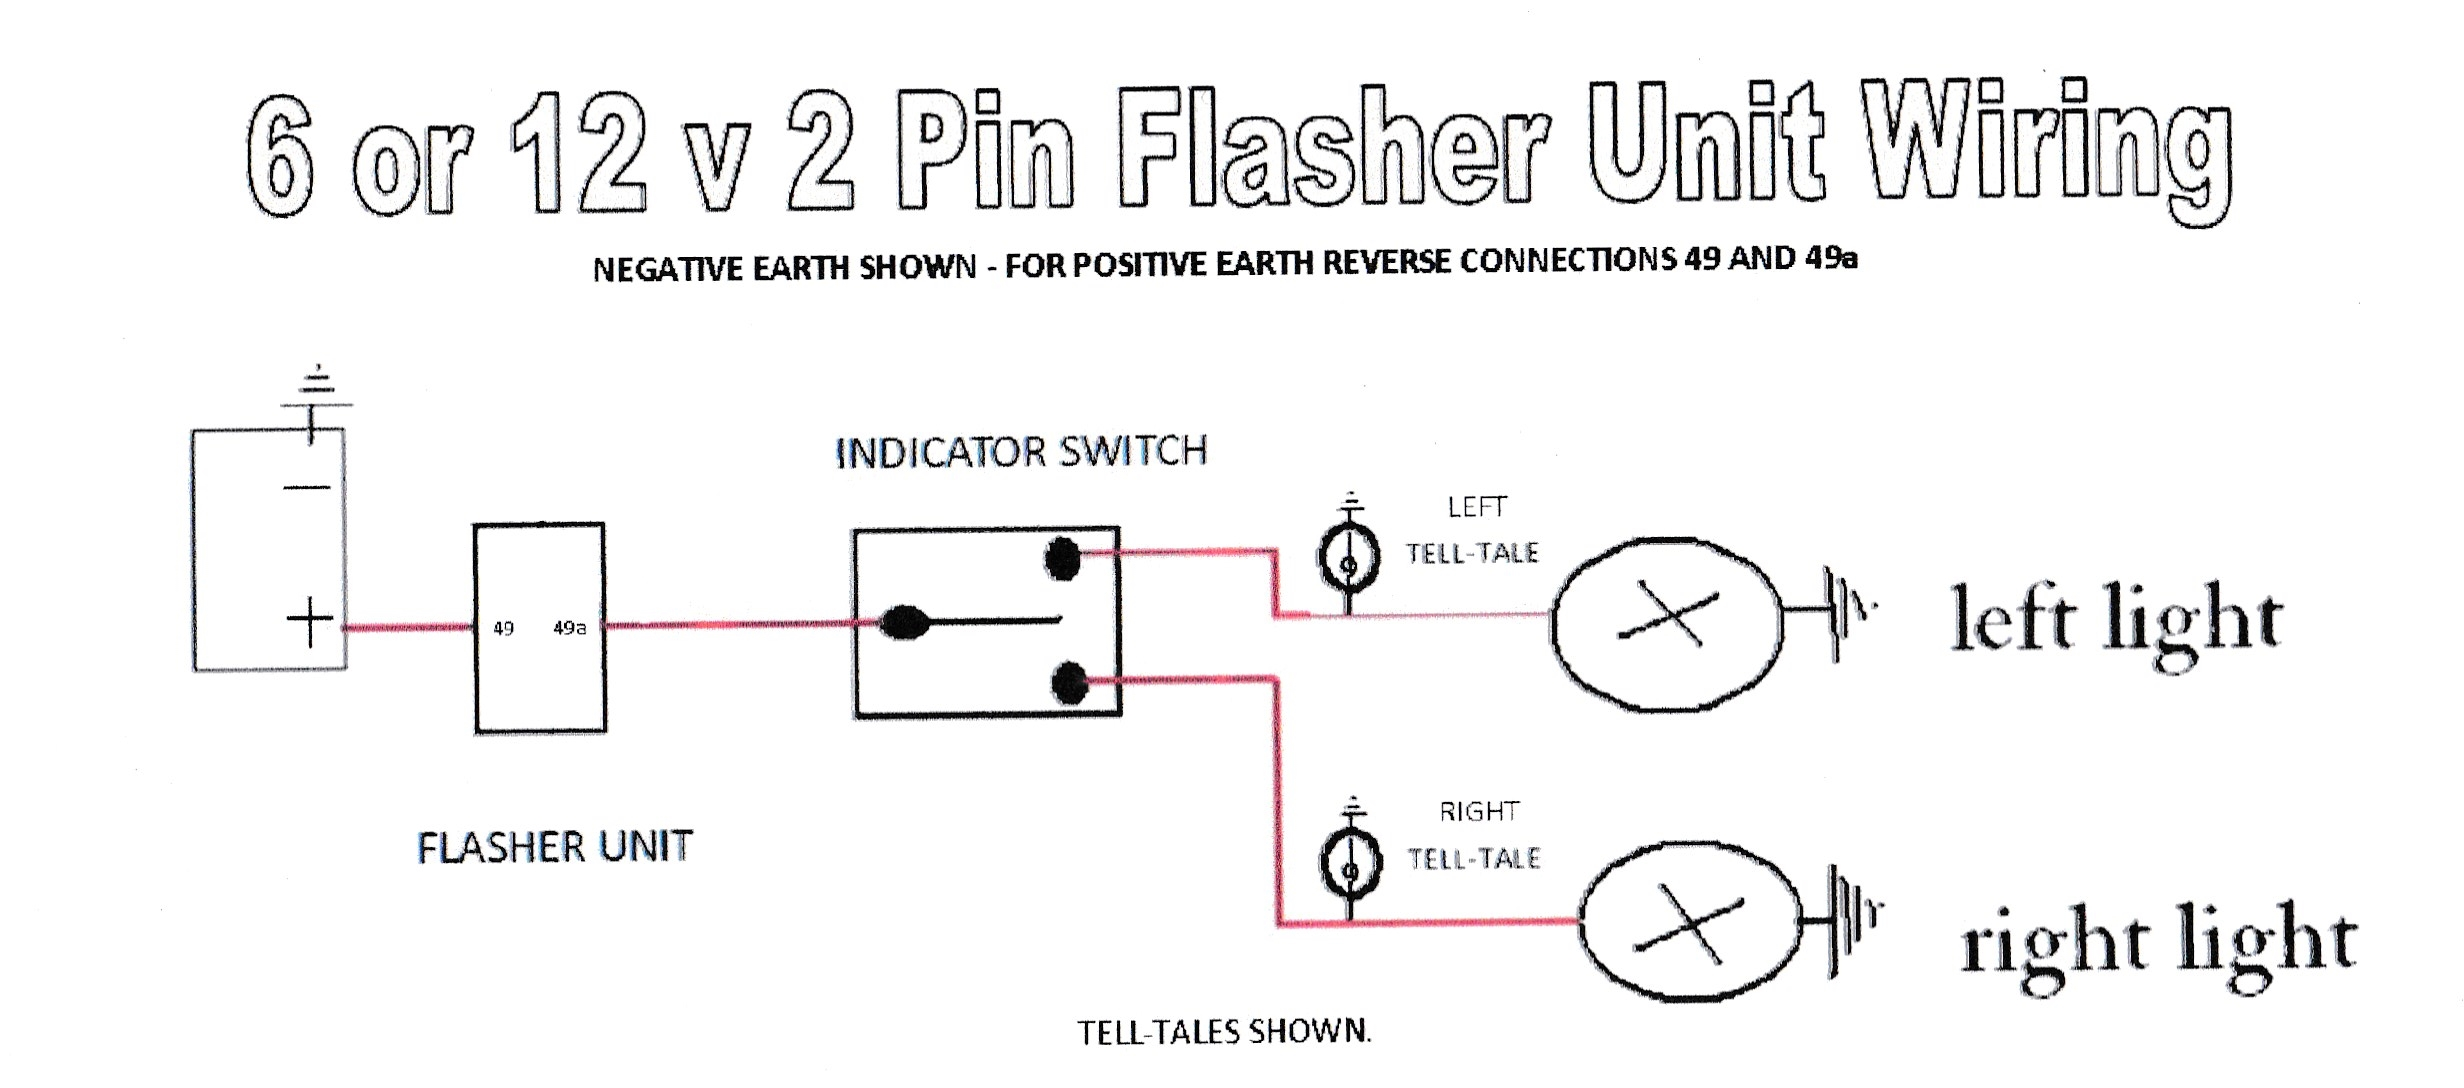 Wiring Diagrams To Assist You With Connecting Up Diagram On Three Way Switch Making The Proper Connection